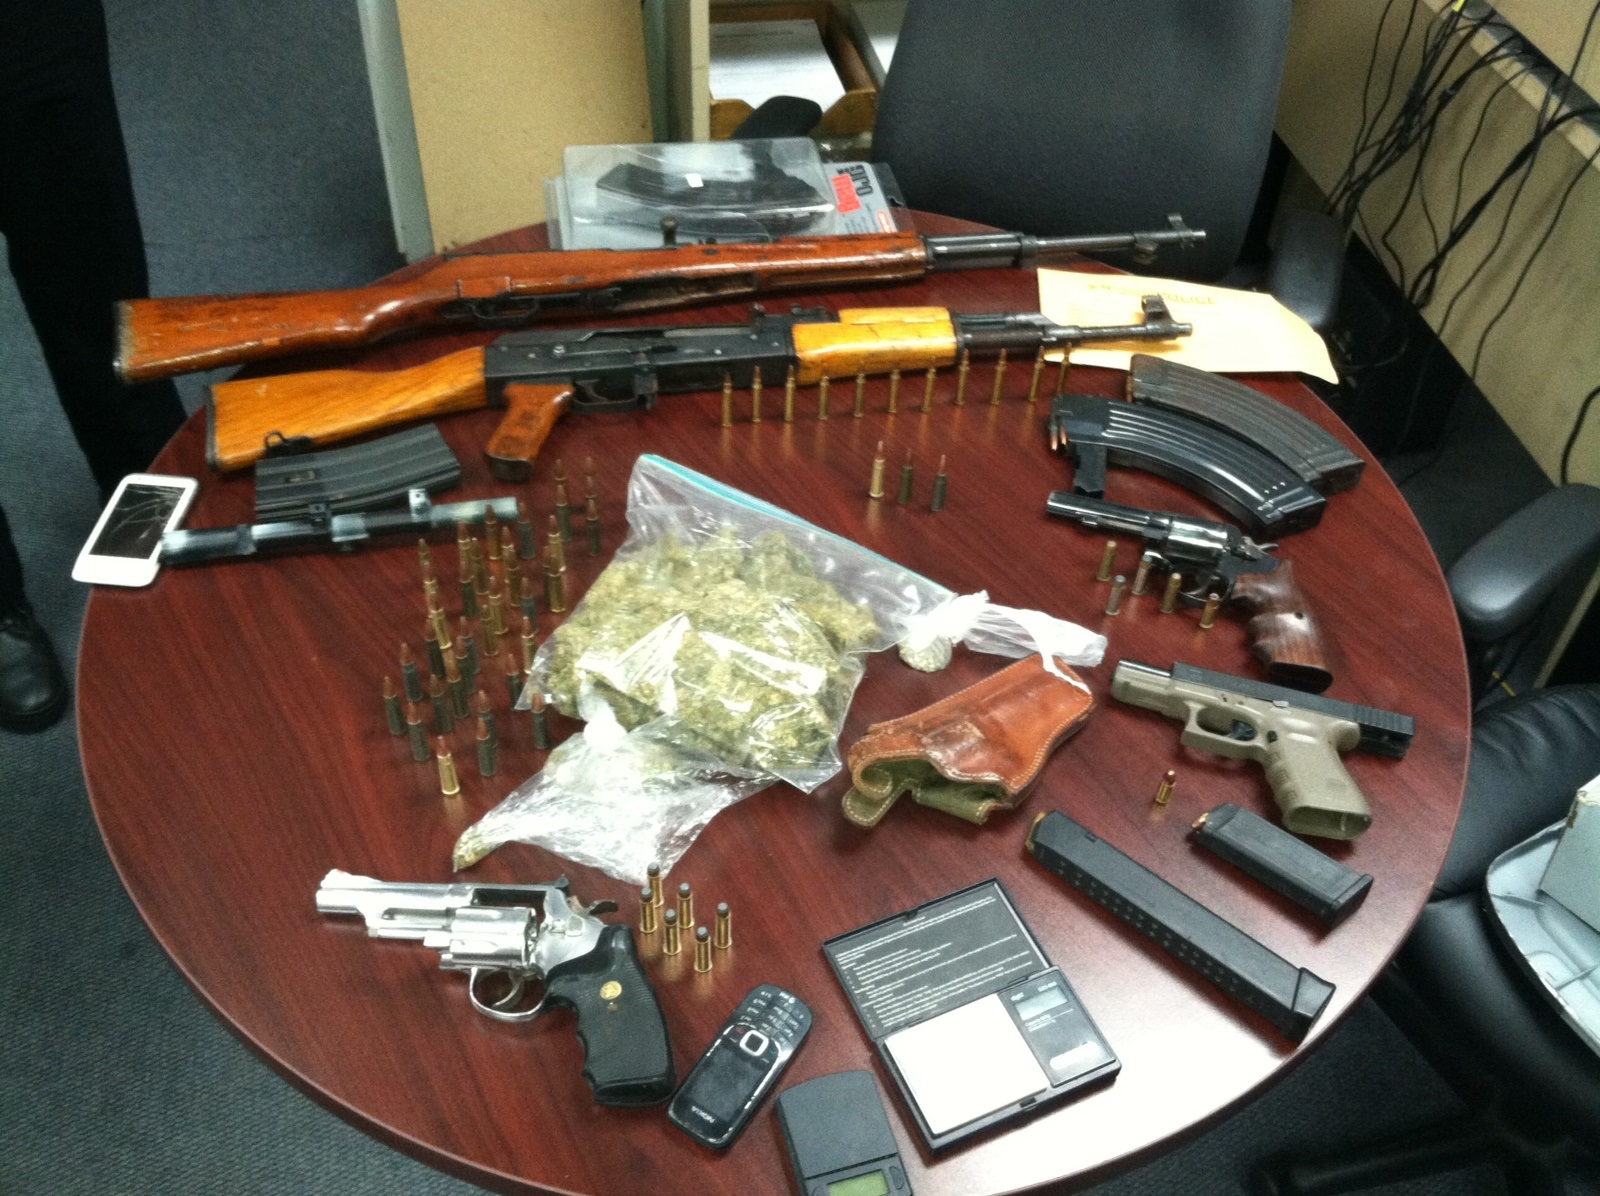 Guns and drugs collected by police